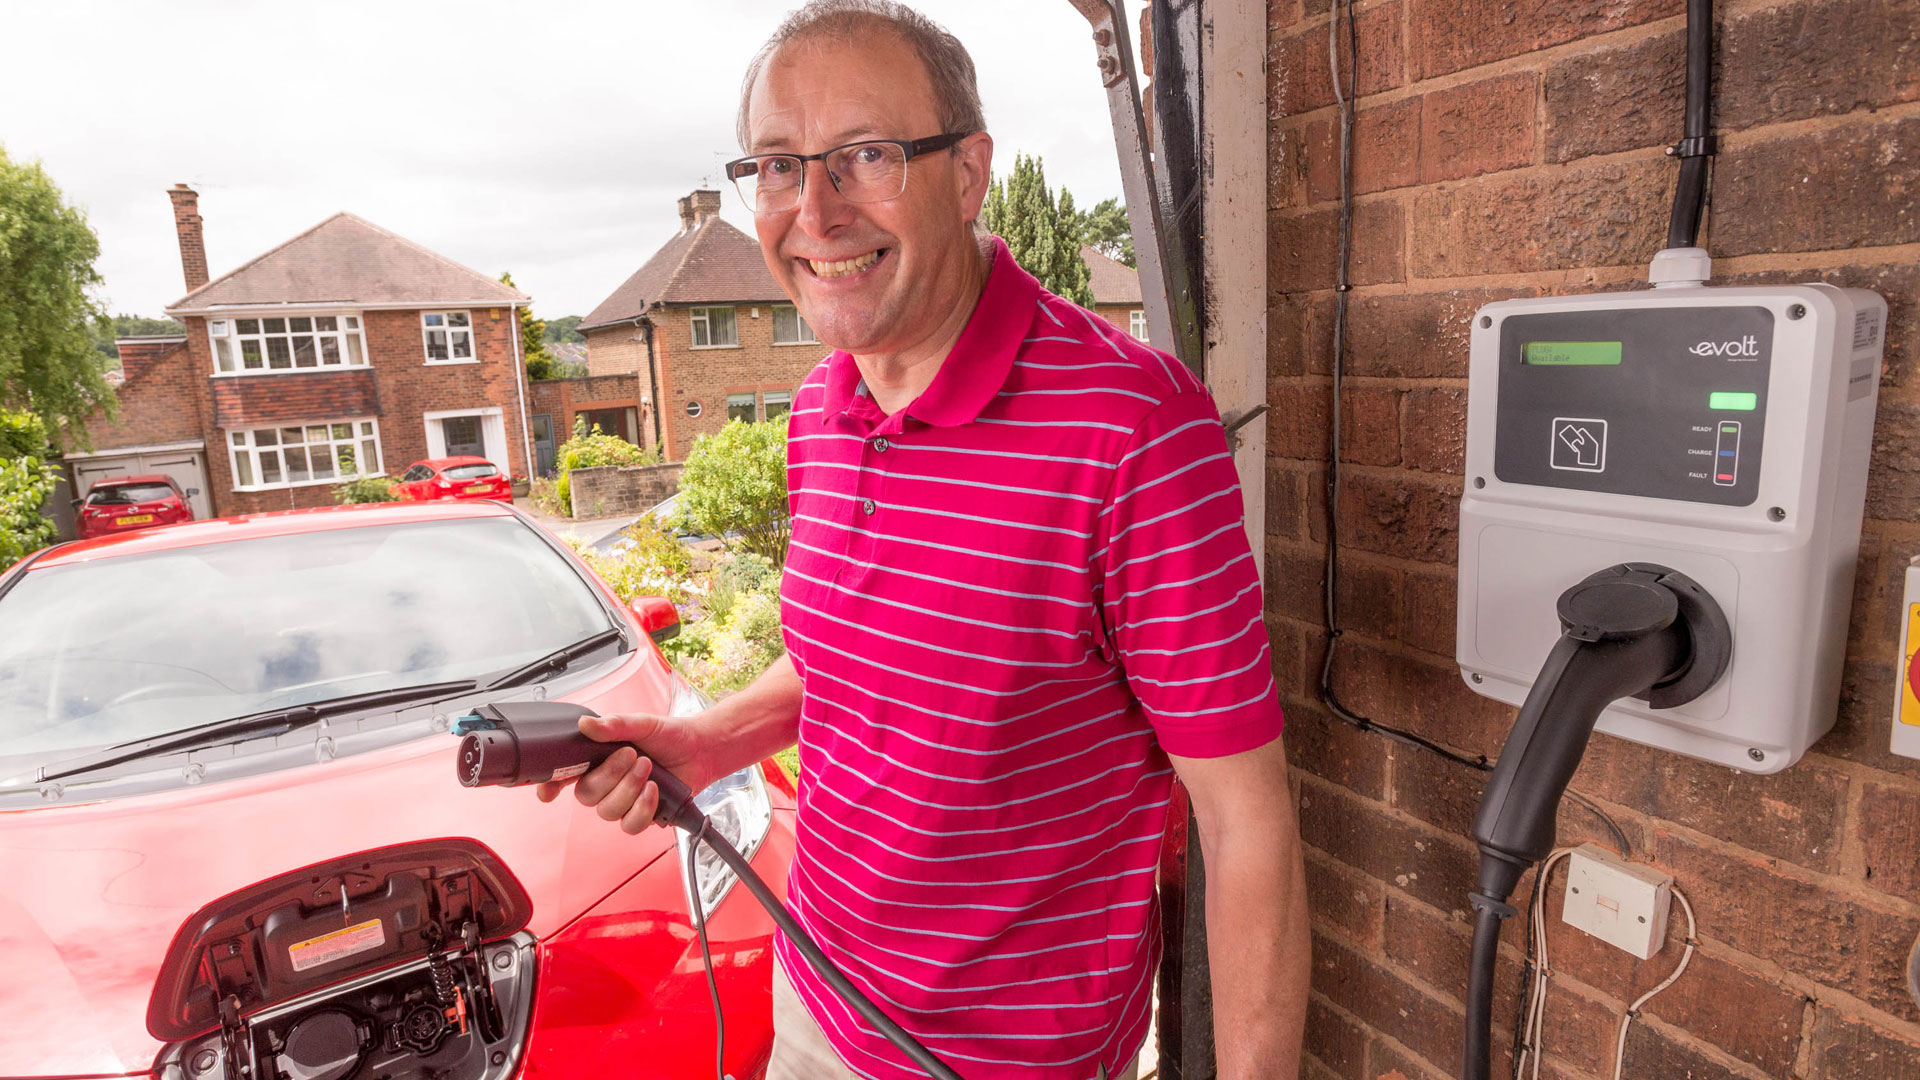 Electric charging at home